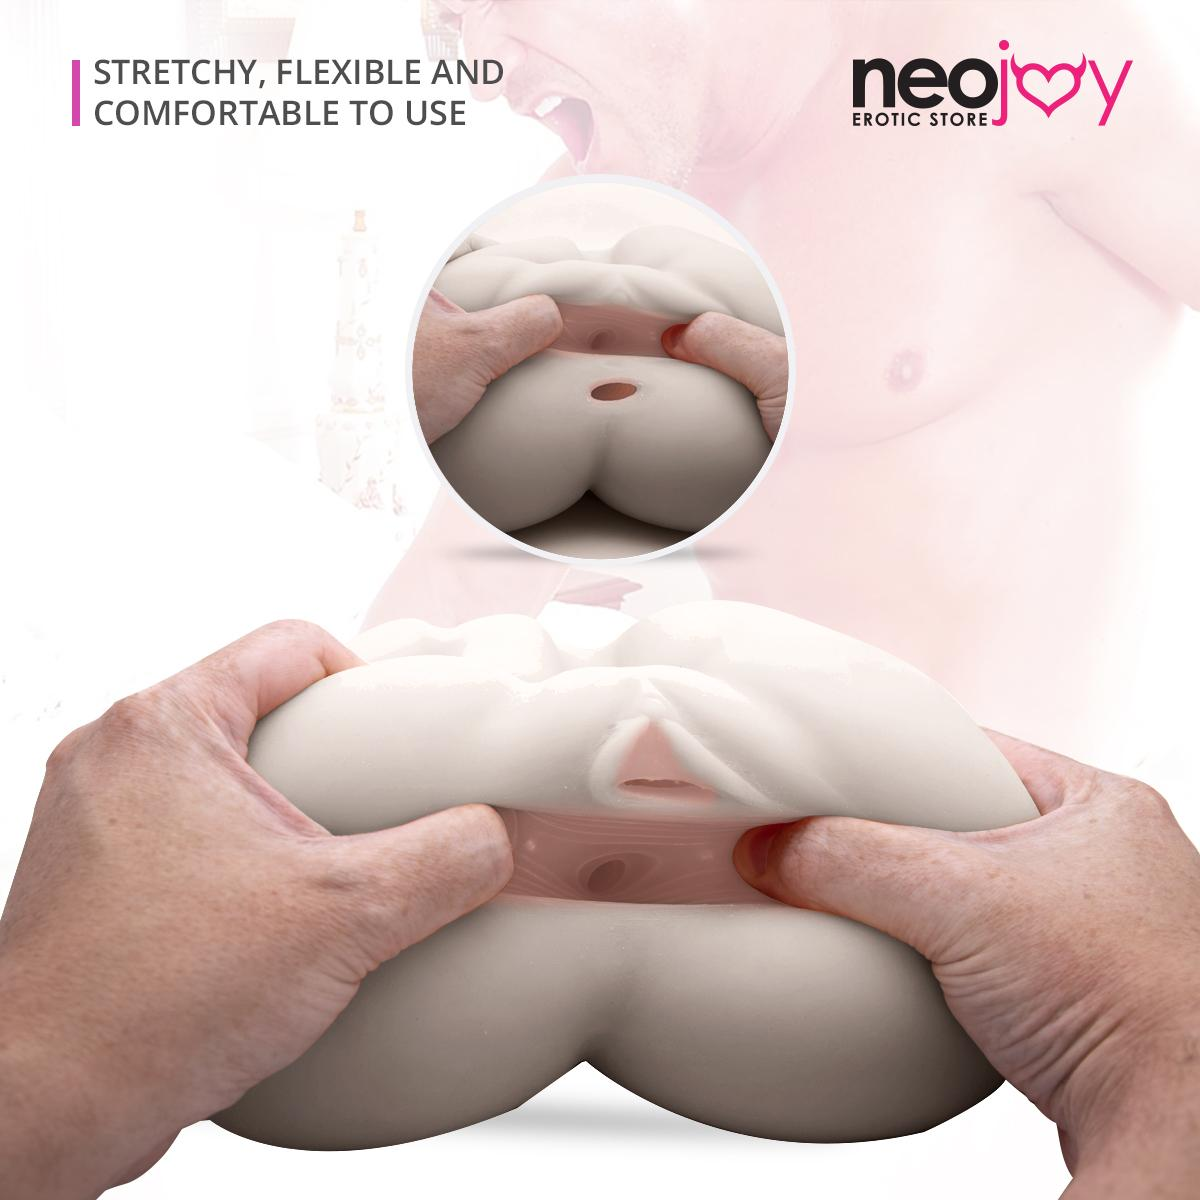 Neojoy - Miss Derriere Sex Doll Stroker with Butt & Vagina TPE Japanese - Small 2.17Kg